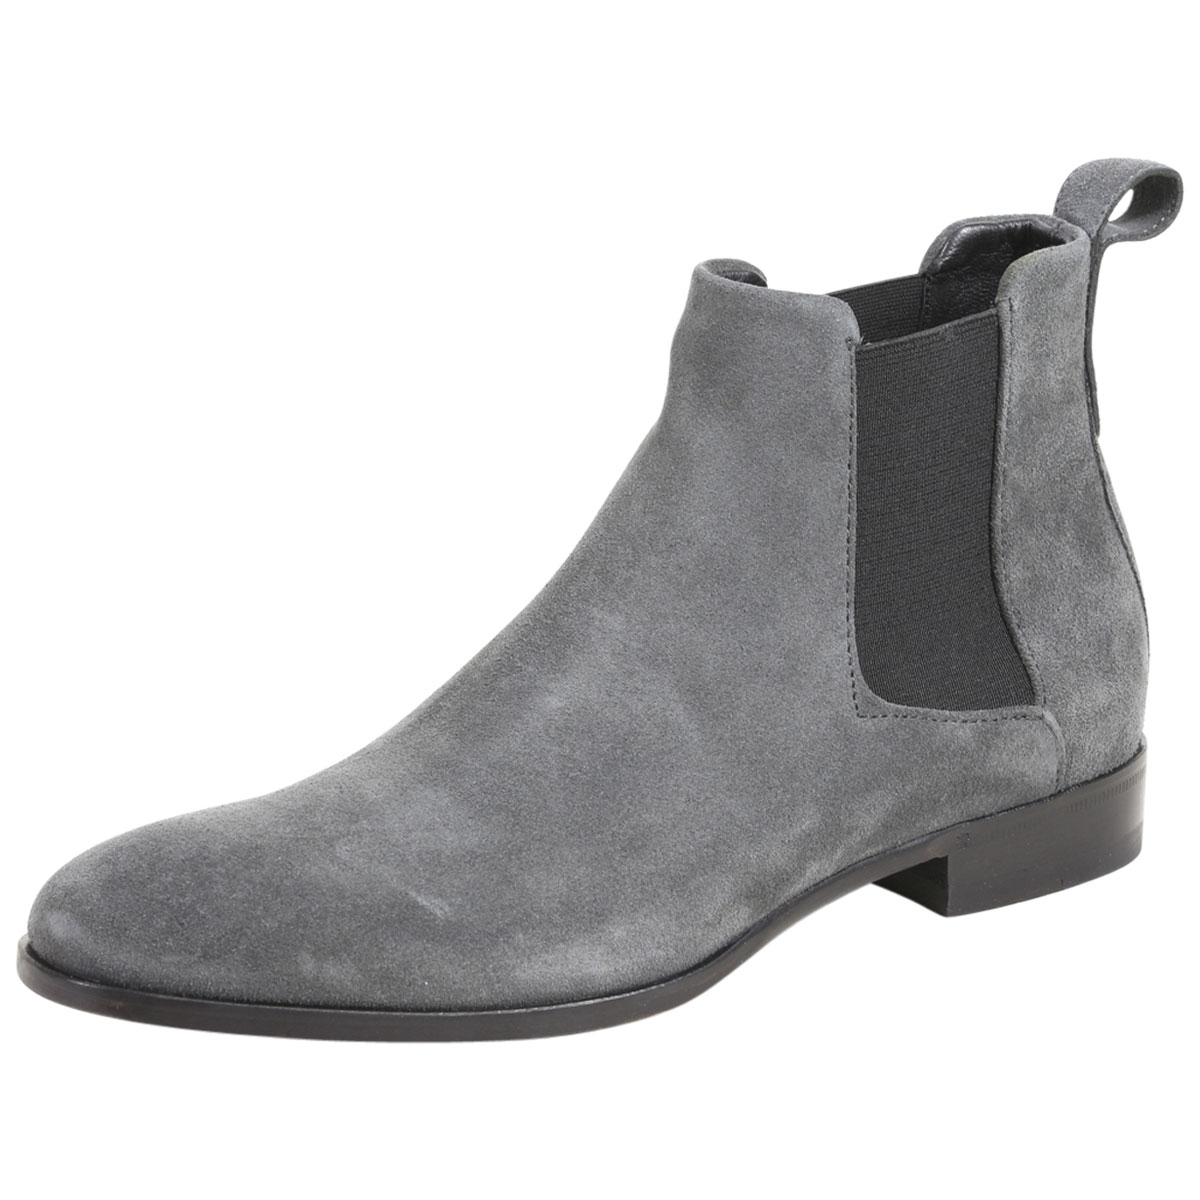 f6b38fe20ce Details about Hugo Boss Men's Cult Suede Leather Chelsea Boots Shoes